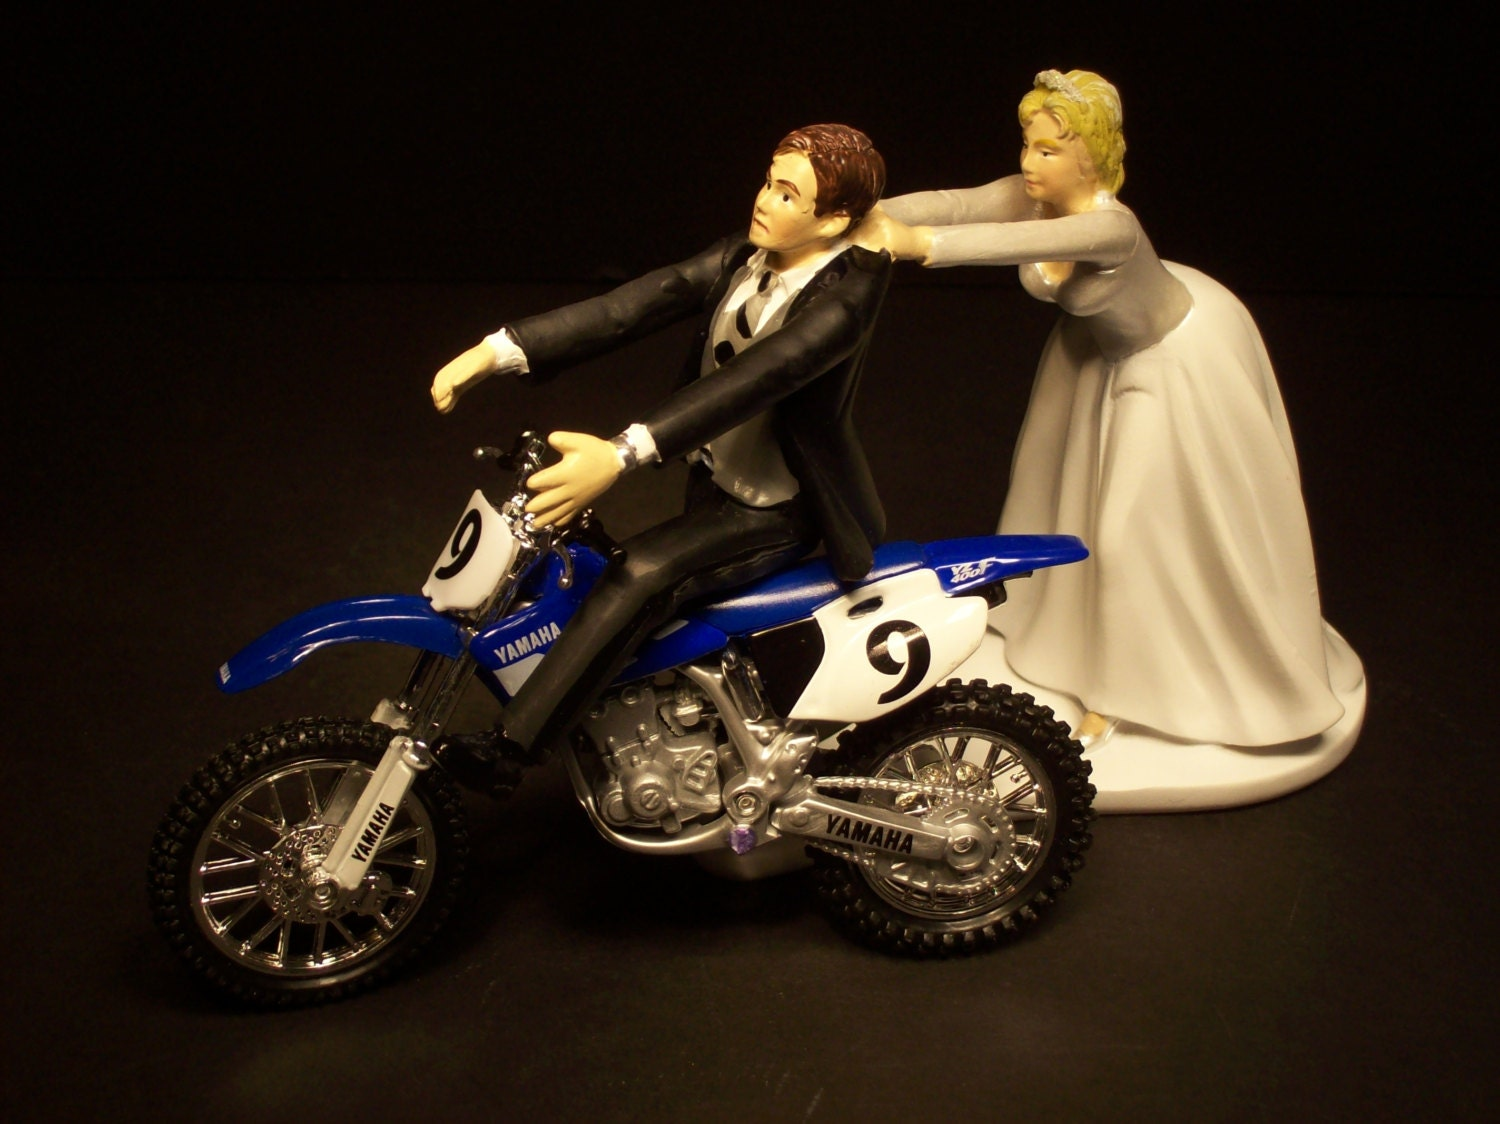 Come Back Blue Yamaha Yz450 F Dirt Bike Bride And Groom Funny